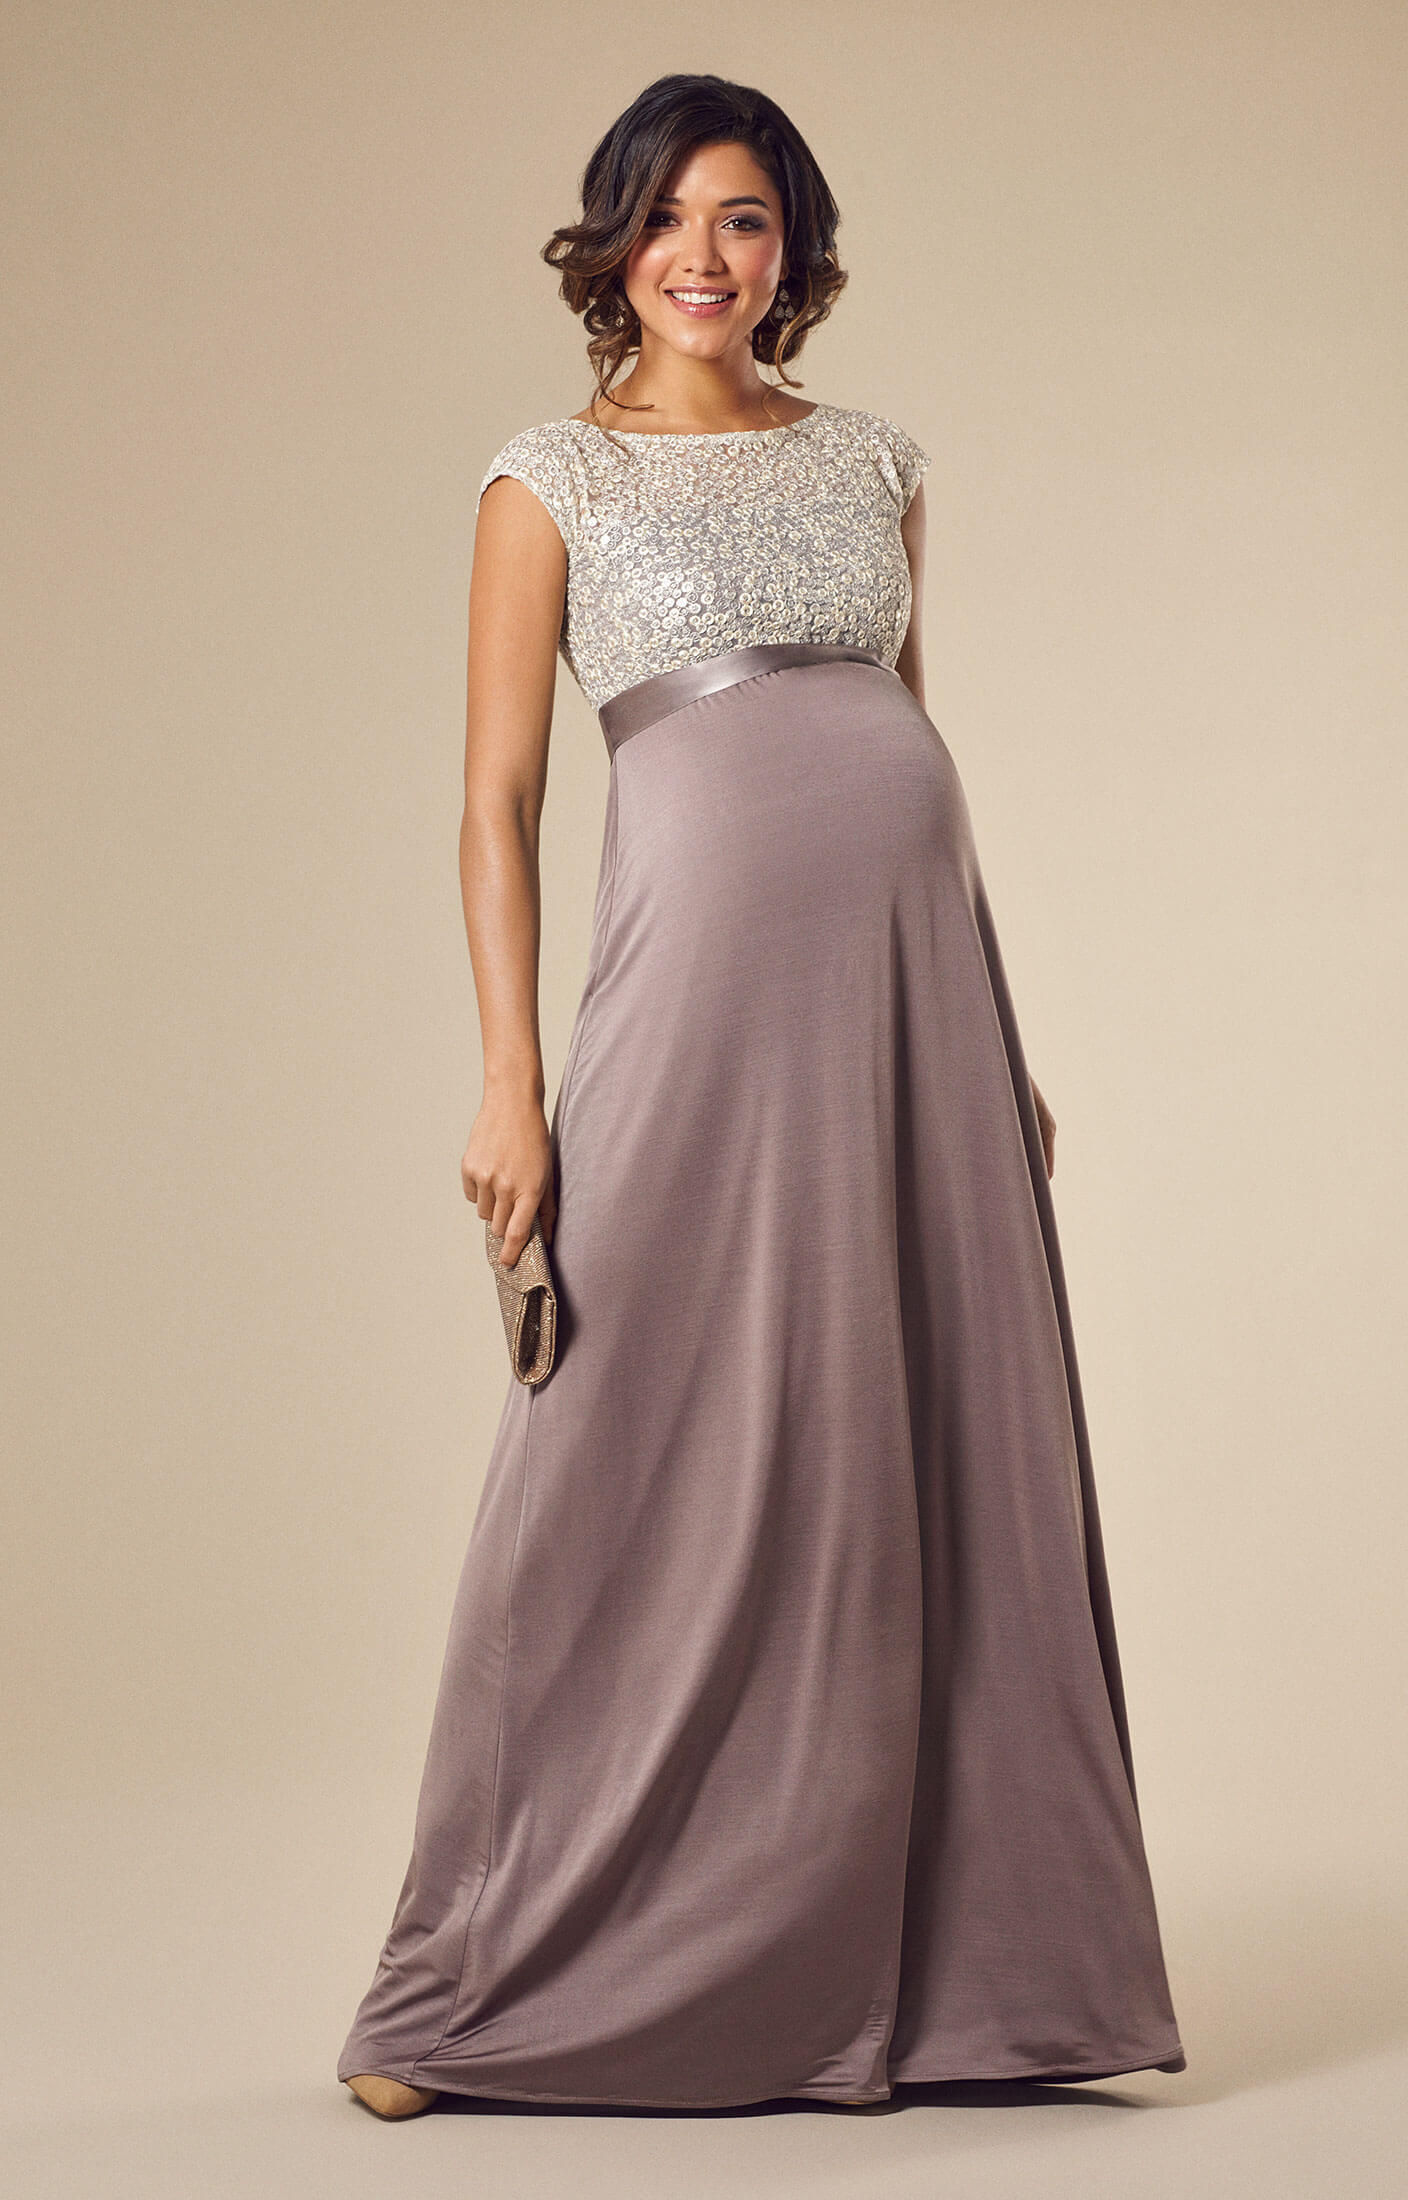 Mia Maternity Gown Dusky Truffle  Maternity Wedding Dresses Evening Wear and Party Clothes by